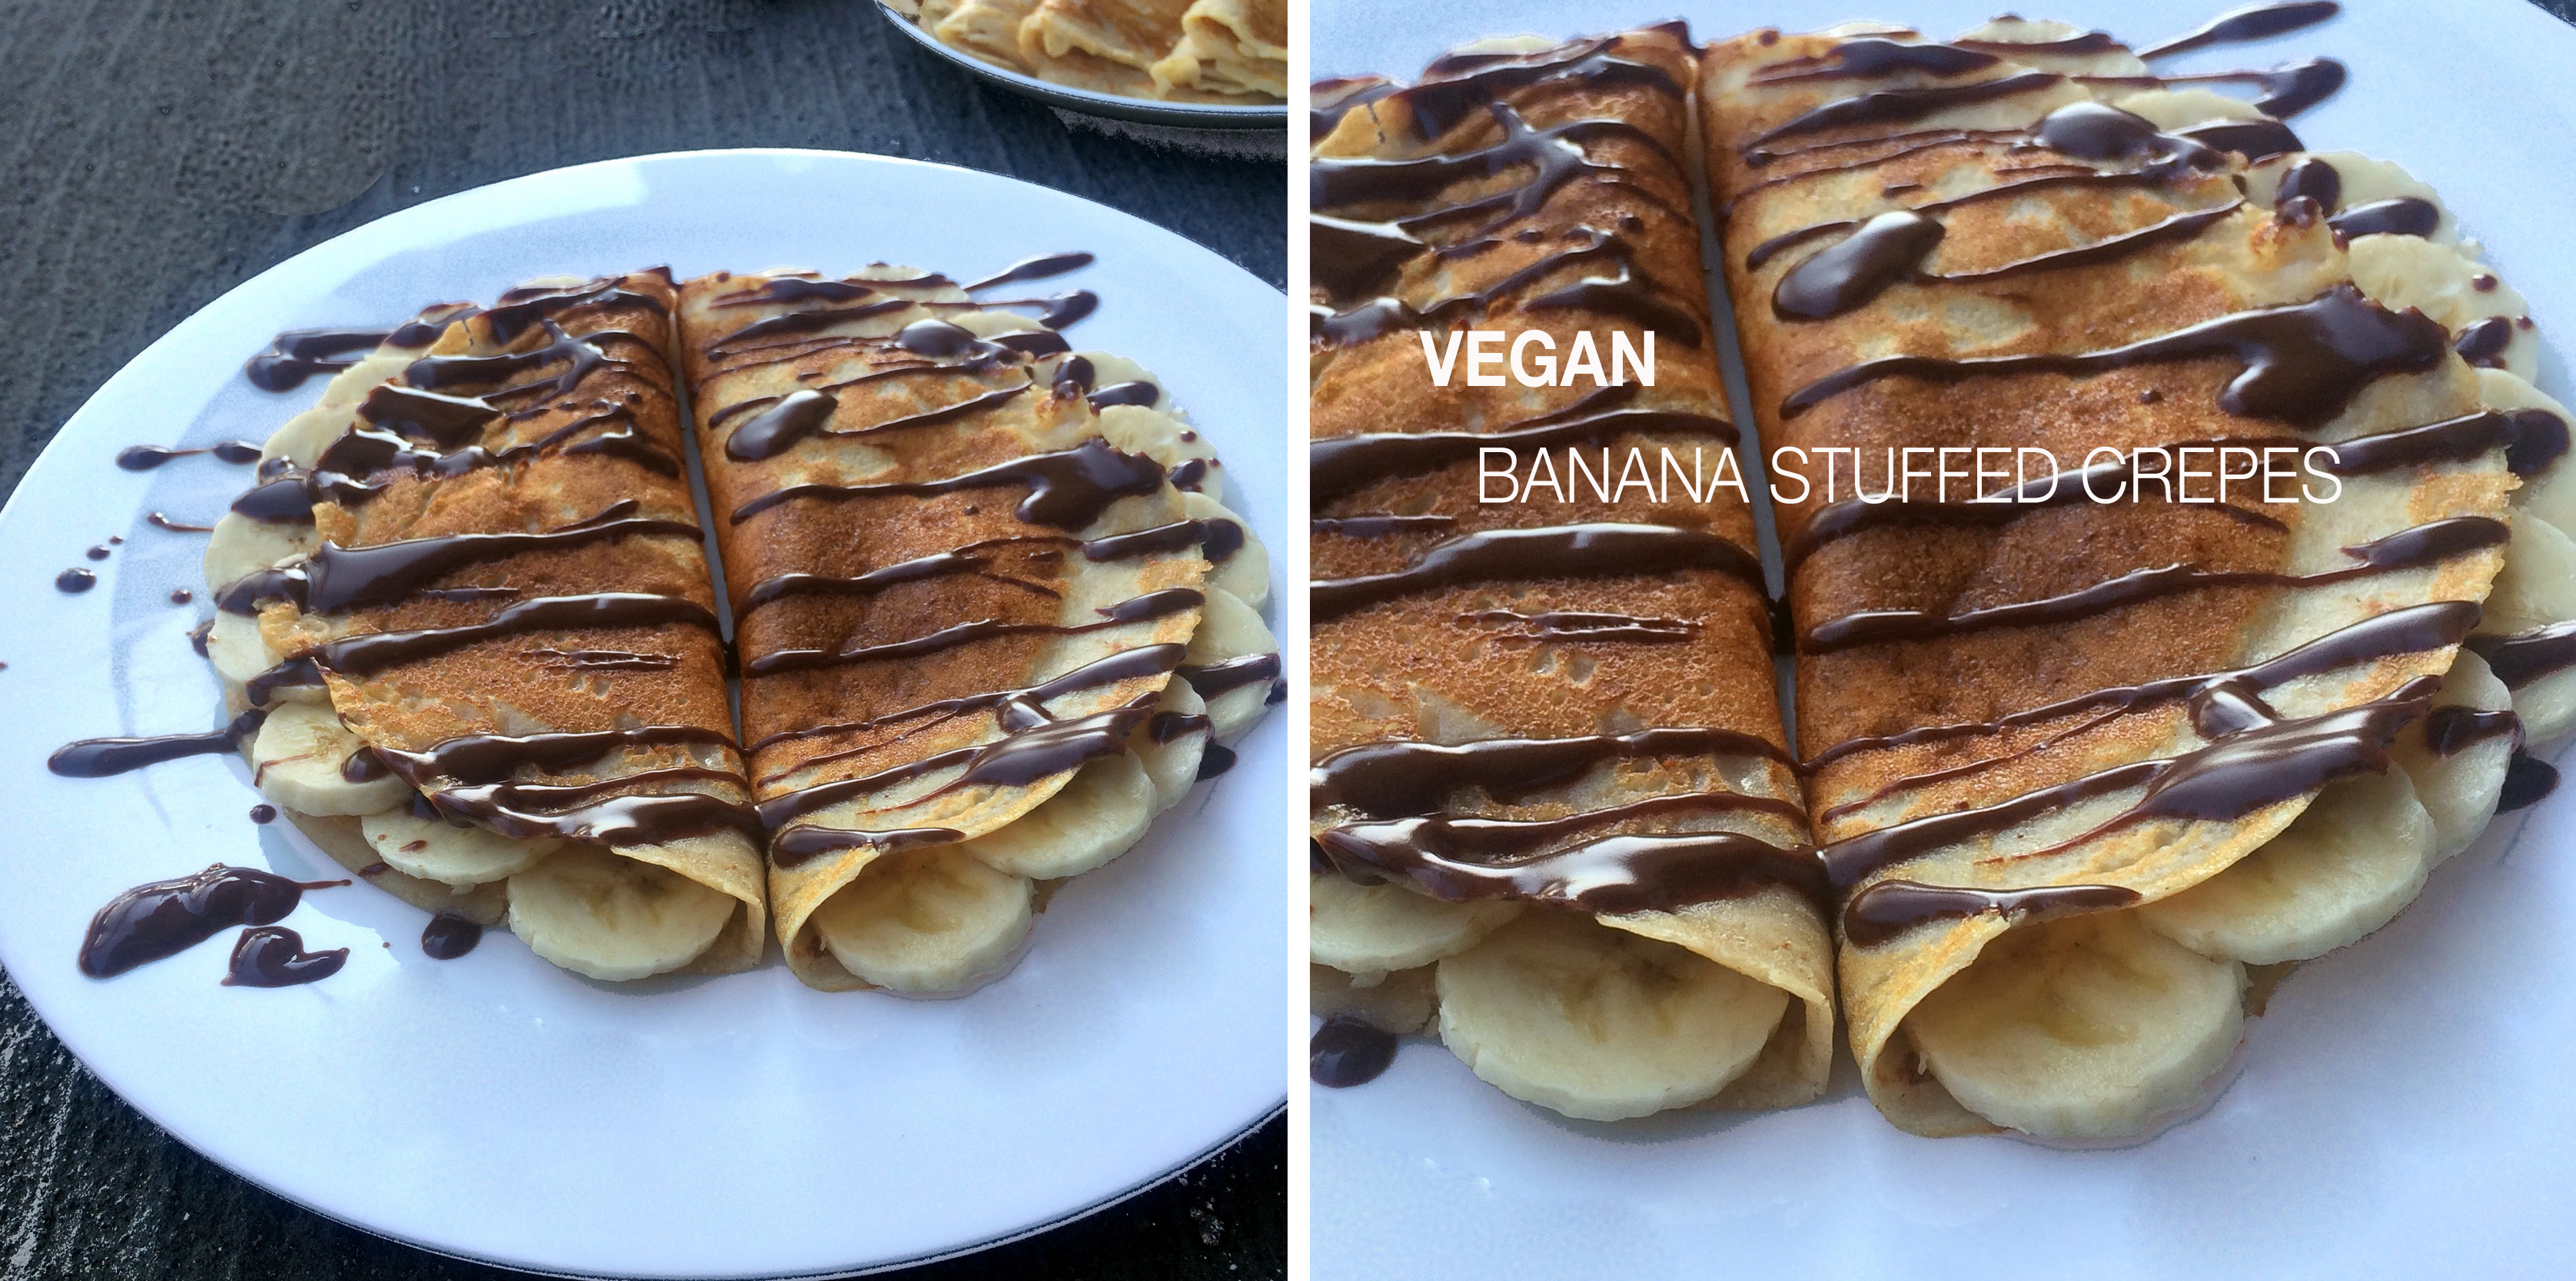 Banana stuffed vegan crepes